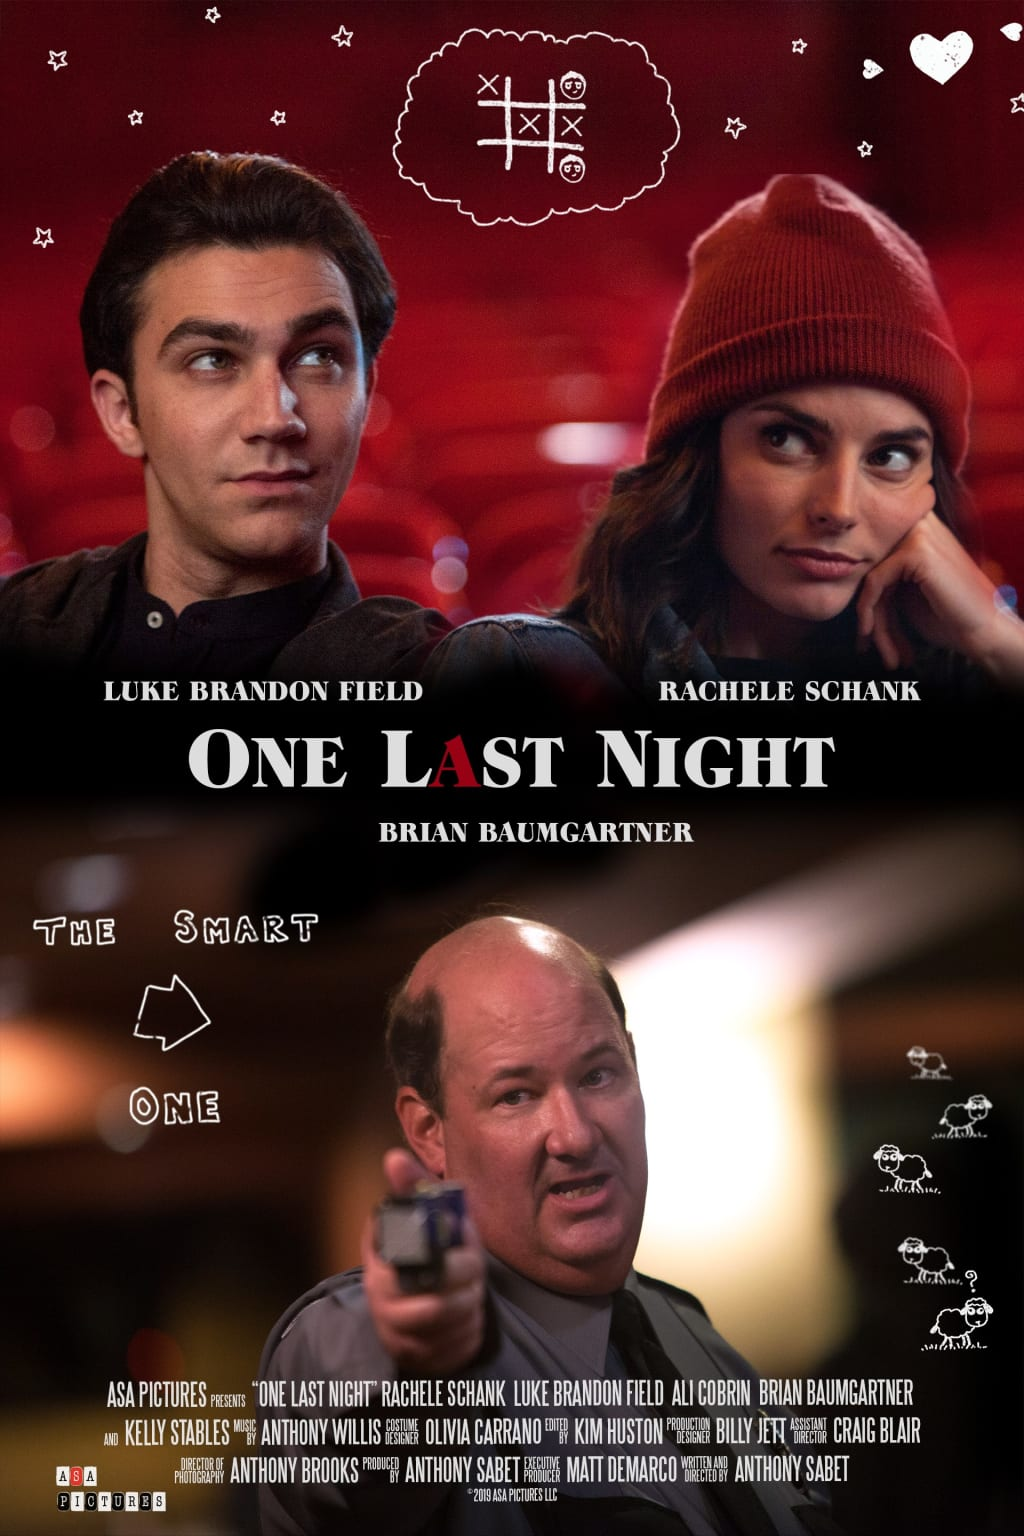 Movie Review: 'One Last Night' Is a Clever Little Romance